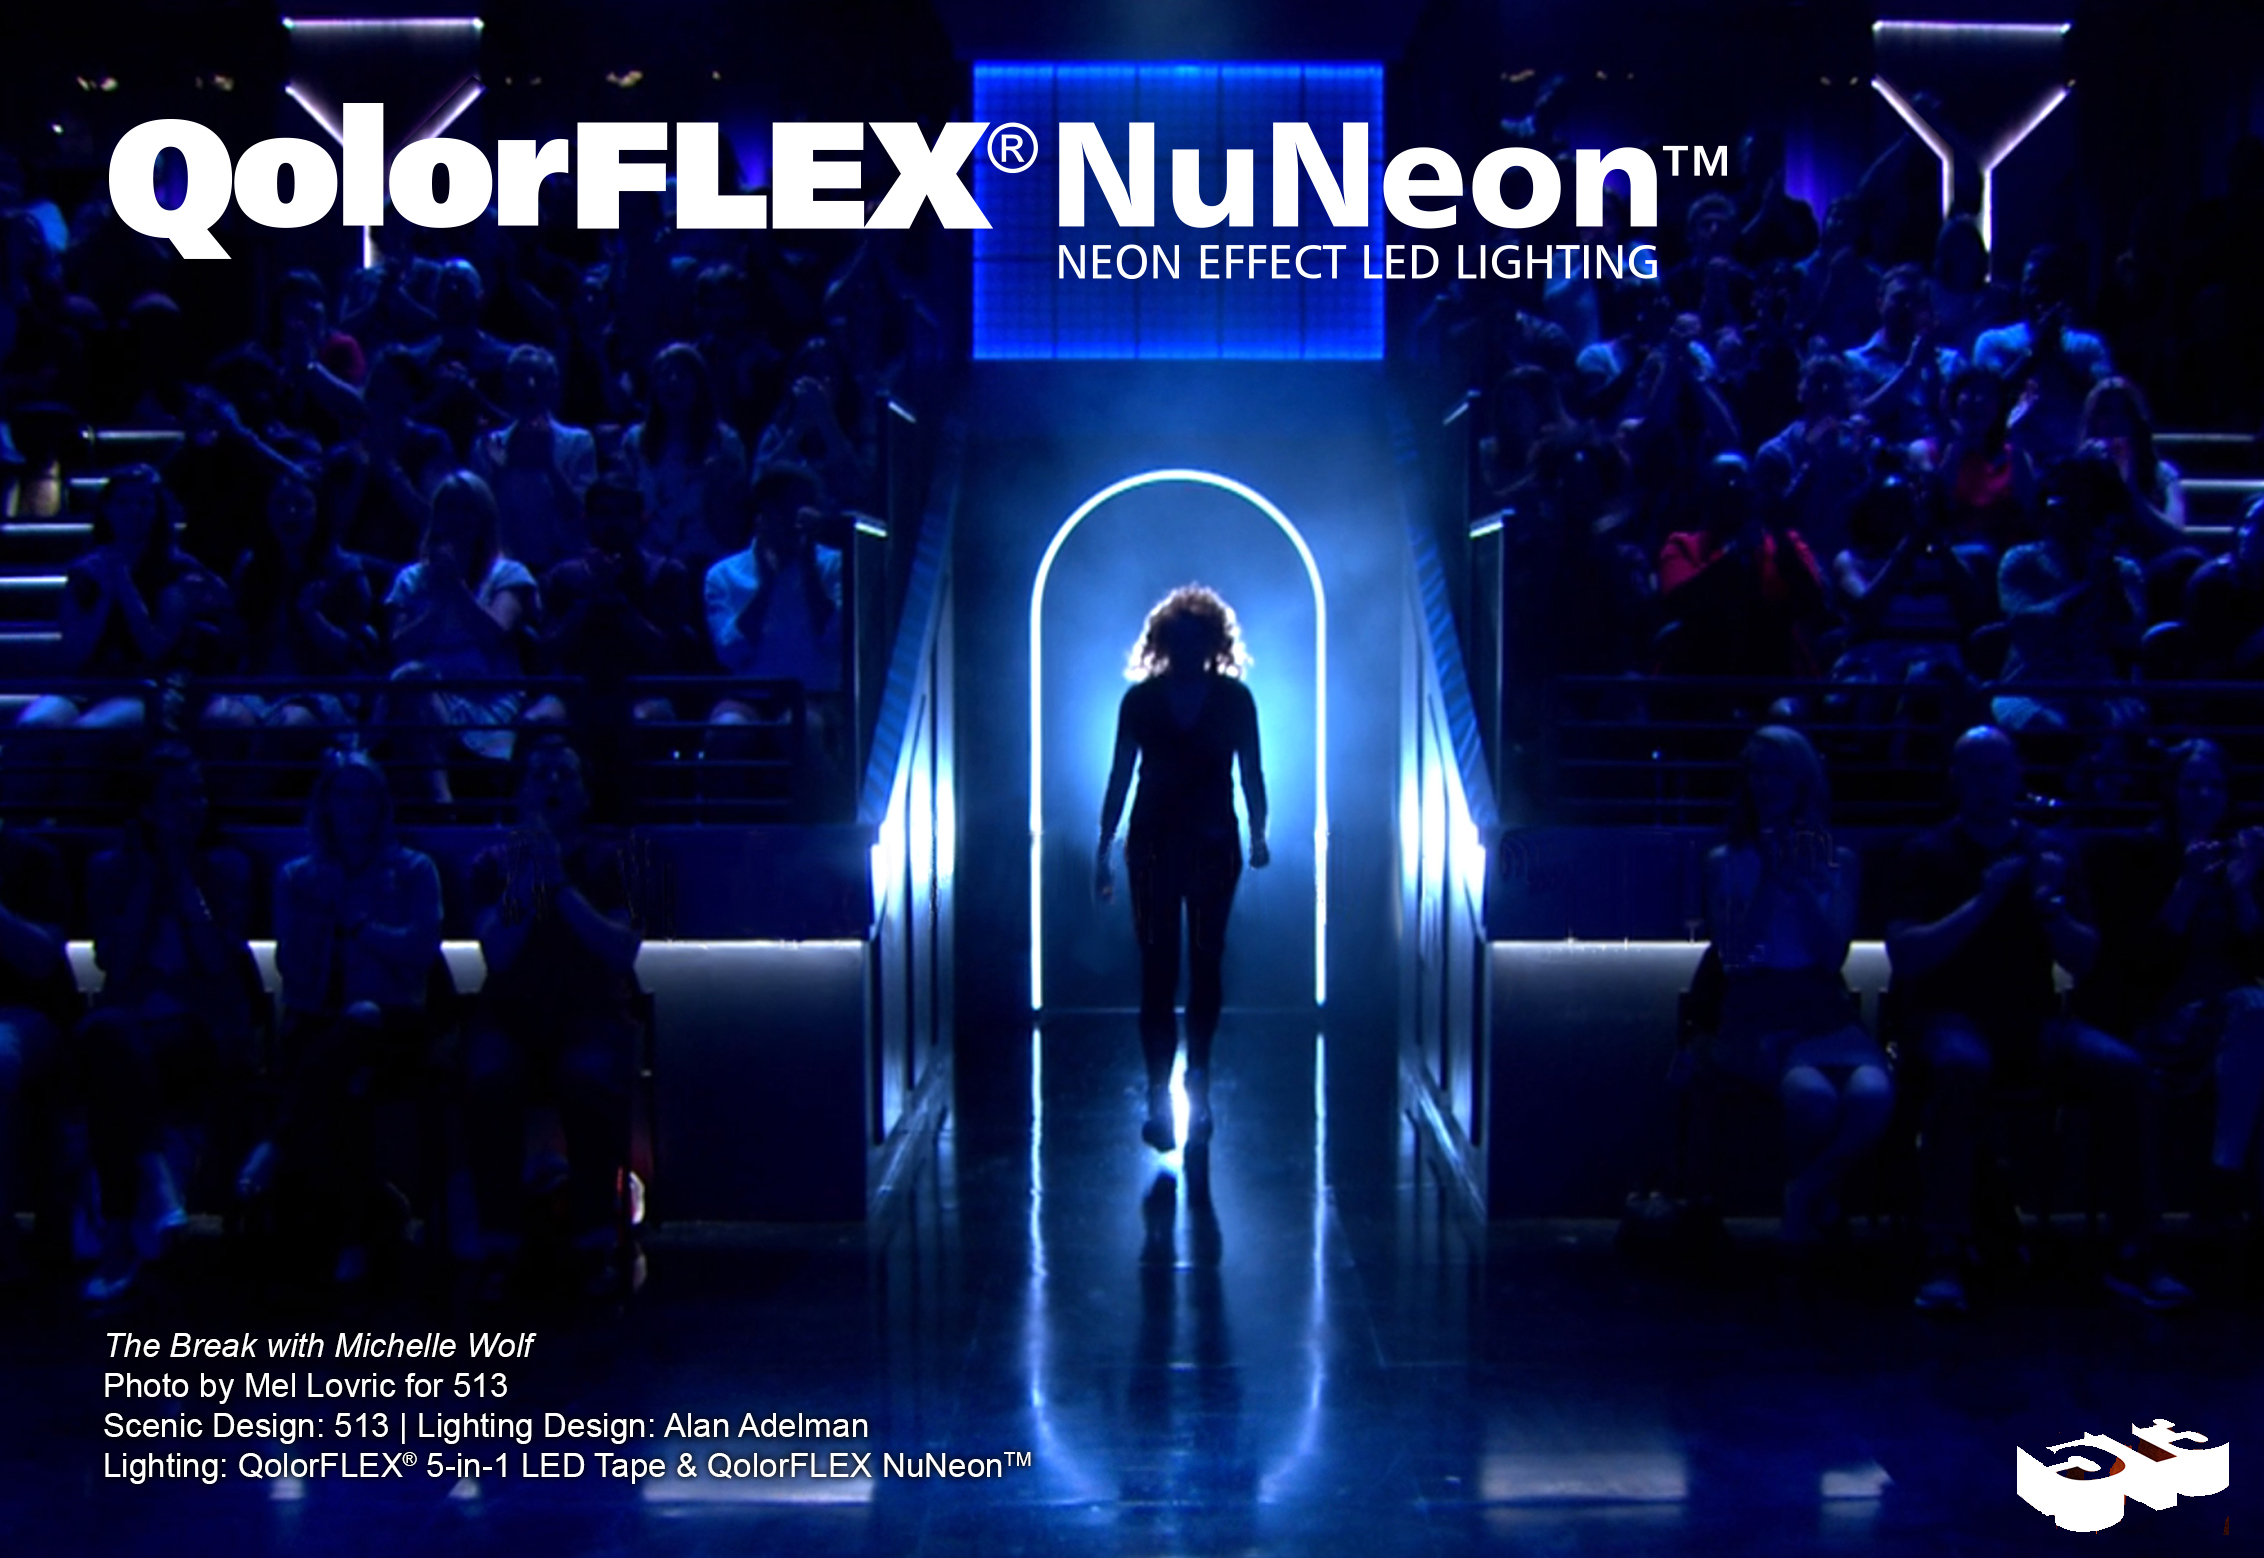 QolorFLEX NuNeon at The Break with Michelle Wolf